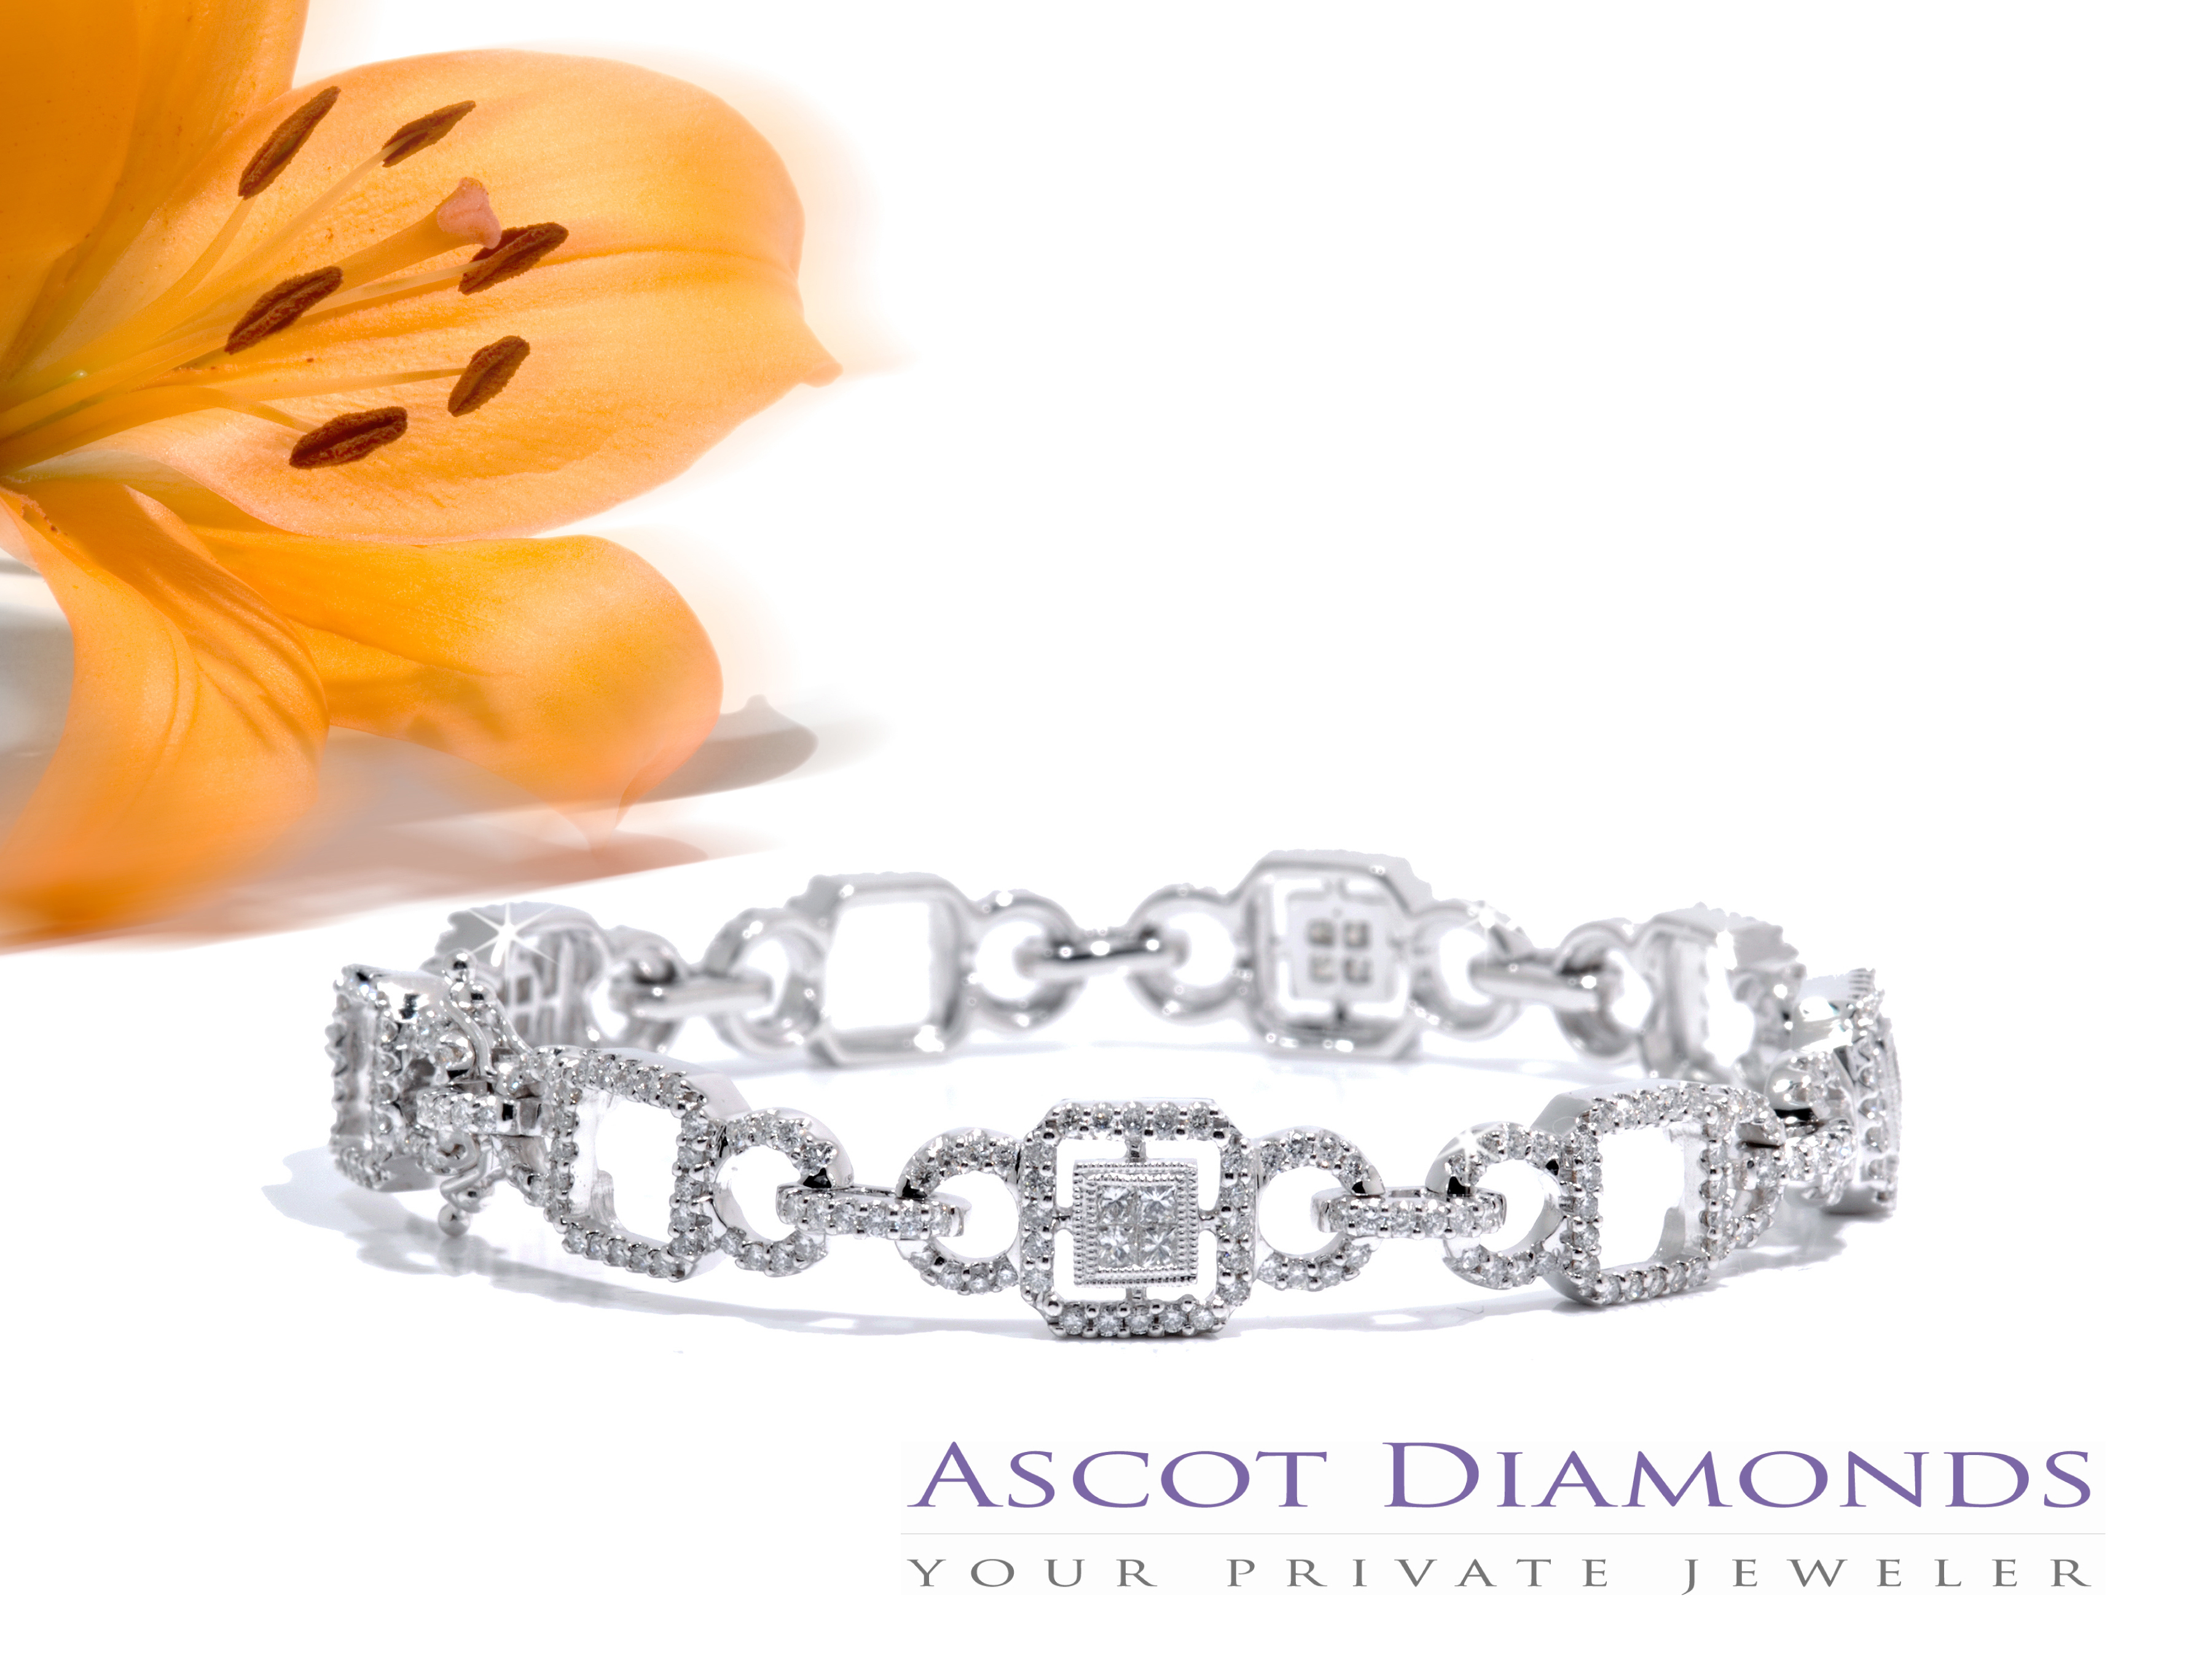 Jewelry, Bracelets, Bracelet, Diamond, Ascot diamonds, private jewelers